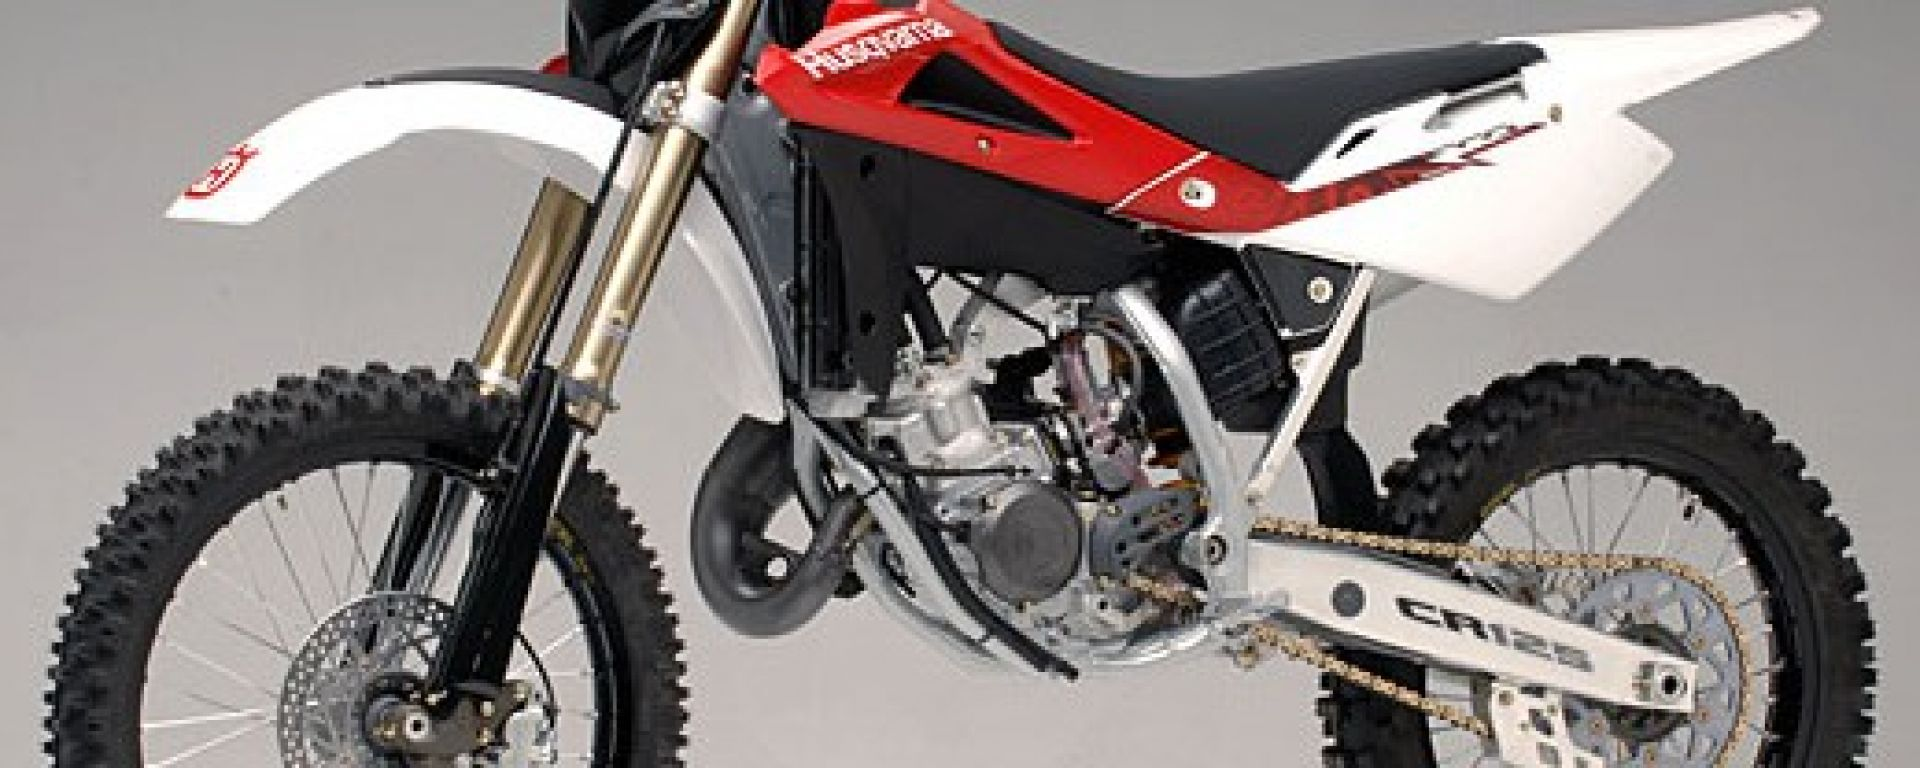 Husqvarna Gamma off road 2007